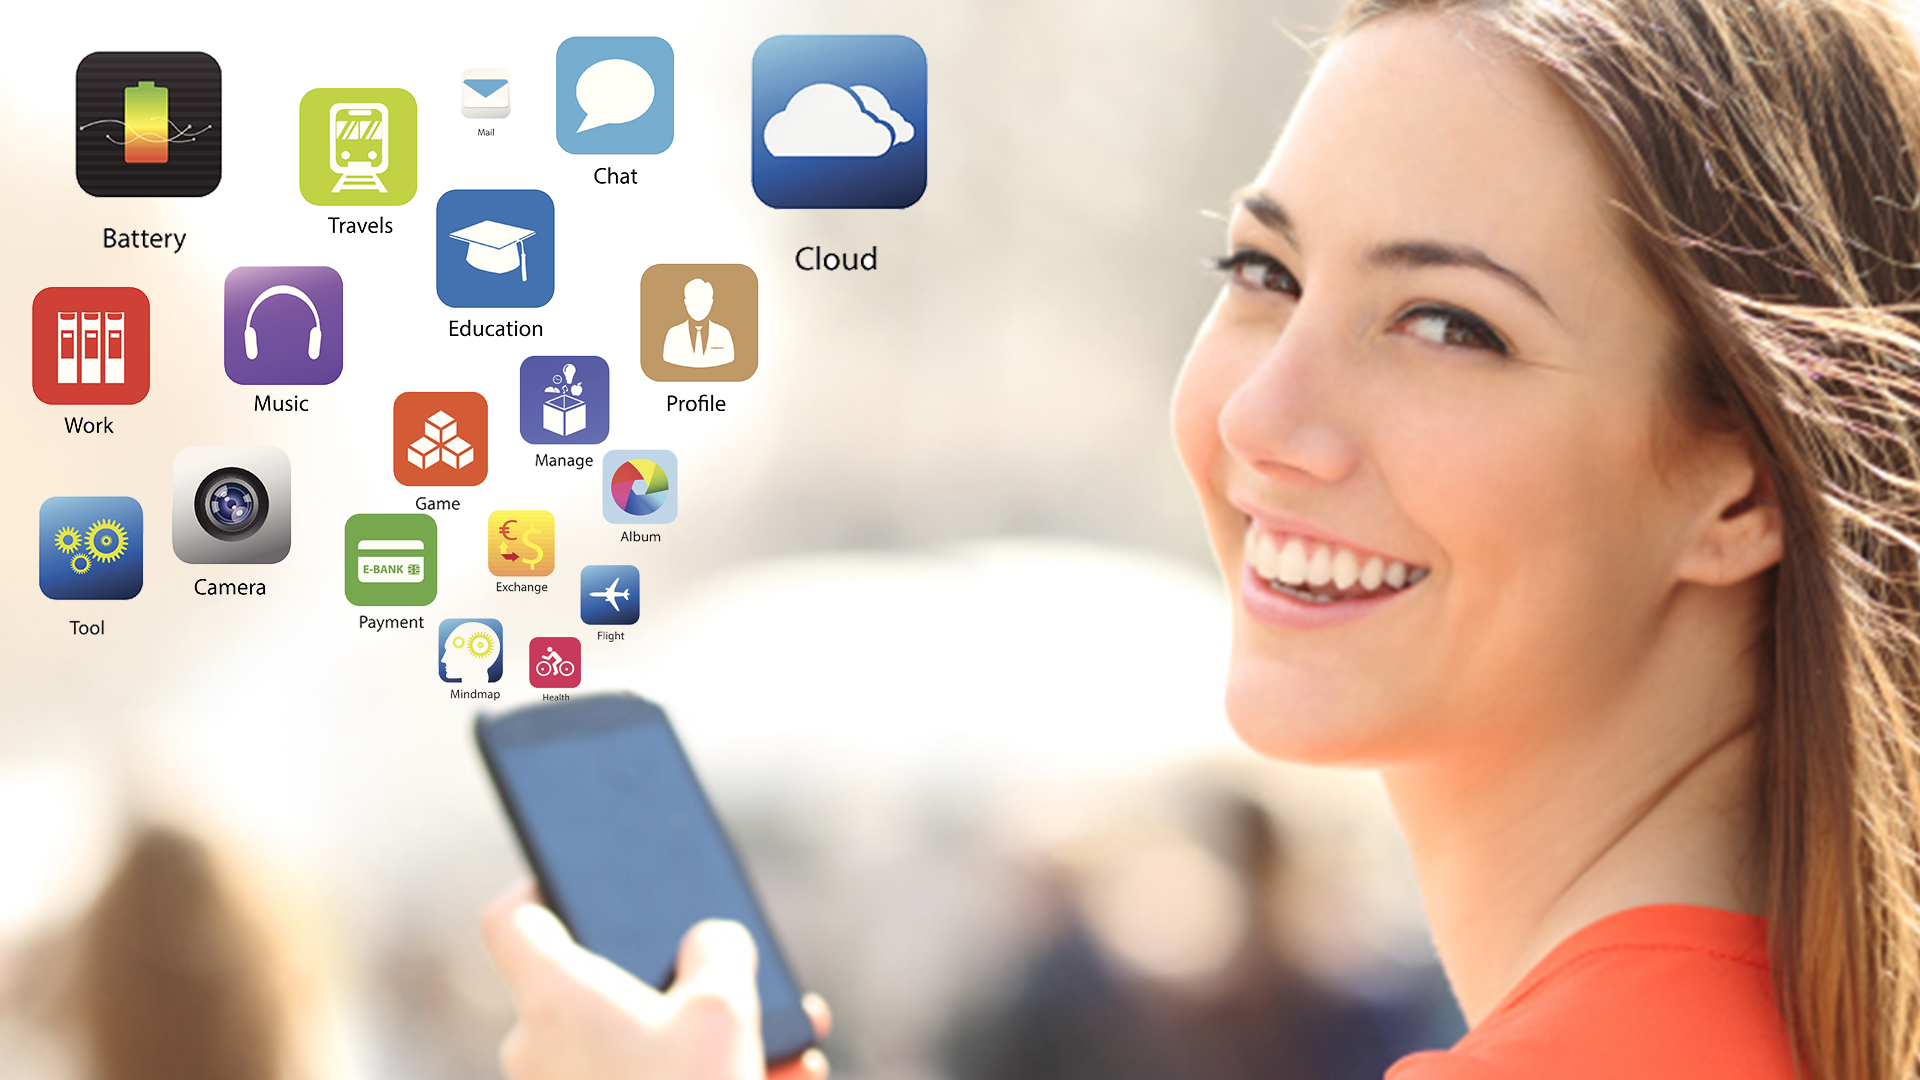 13 Free Phone Apps You Didn't Know You Needed